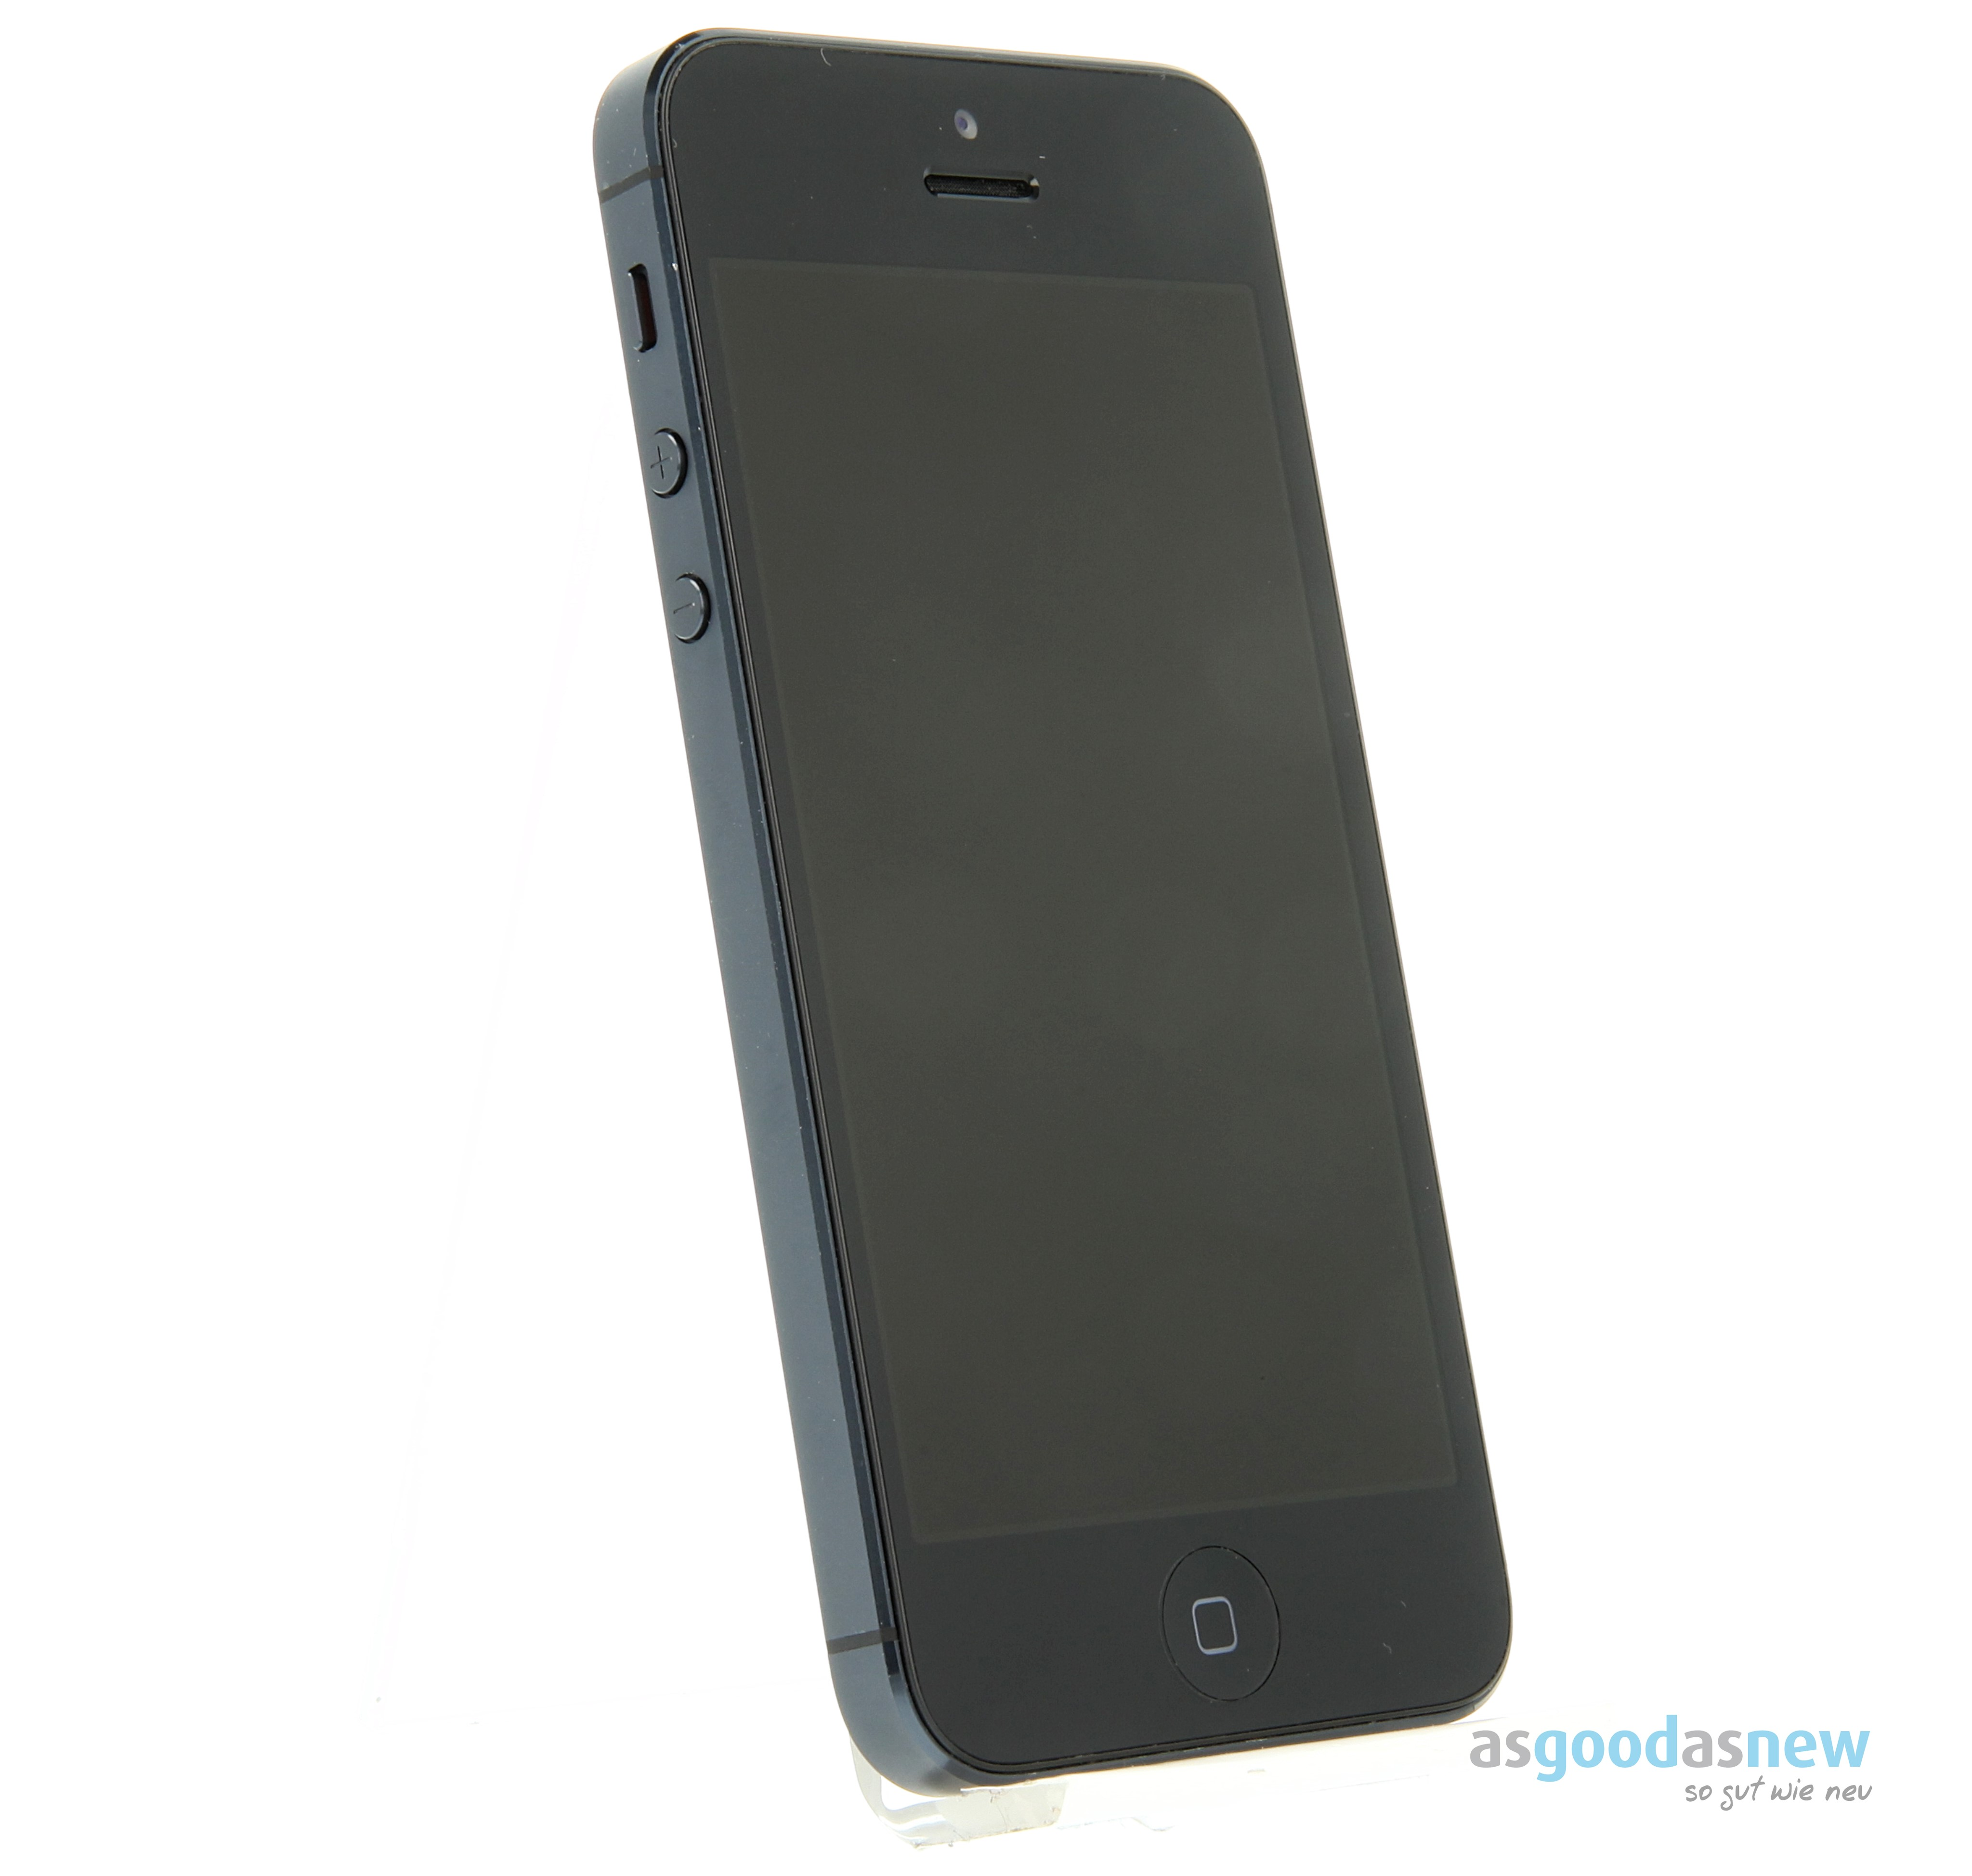 Apple-iPhone-5-16-GB-Schwarz-Graphit-DE-T-Mobile-SIMLOCK-in-OVP-TOP-870160